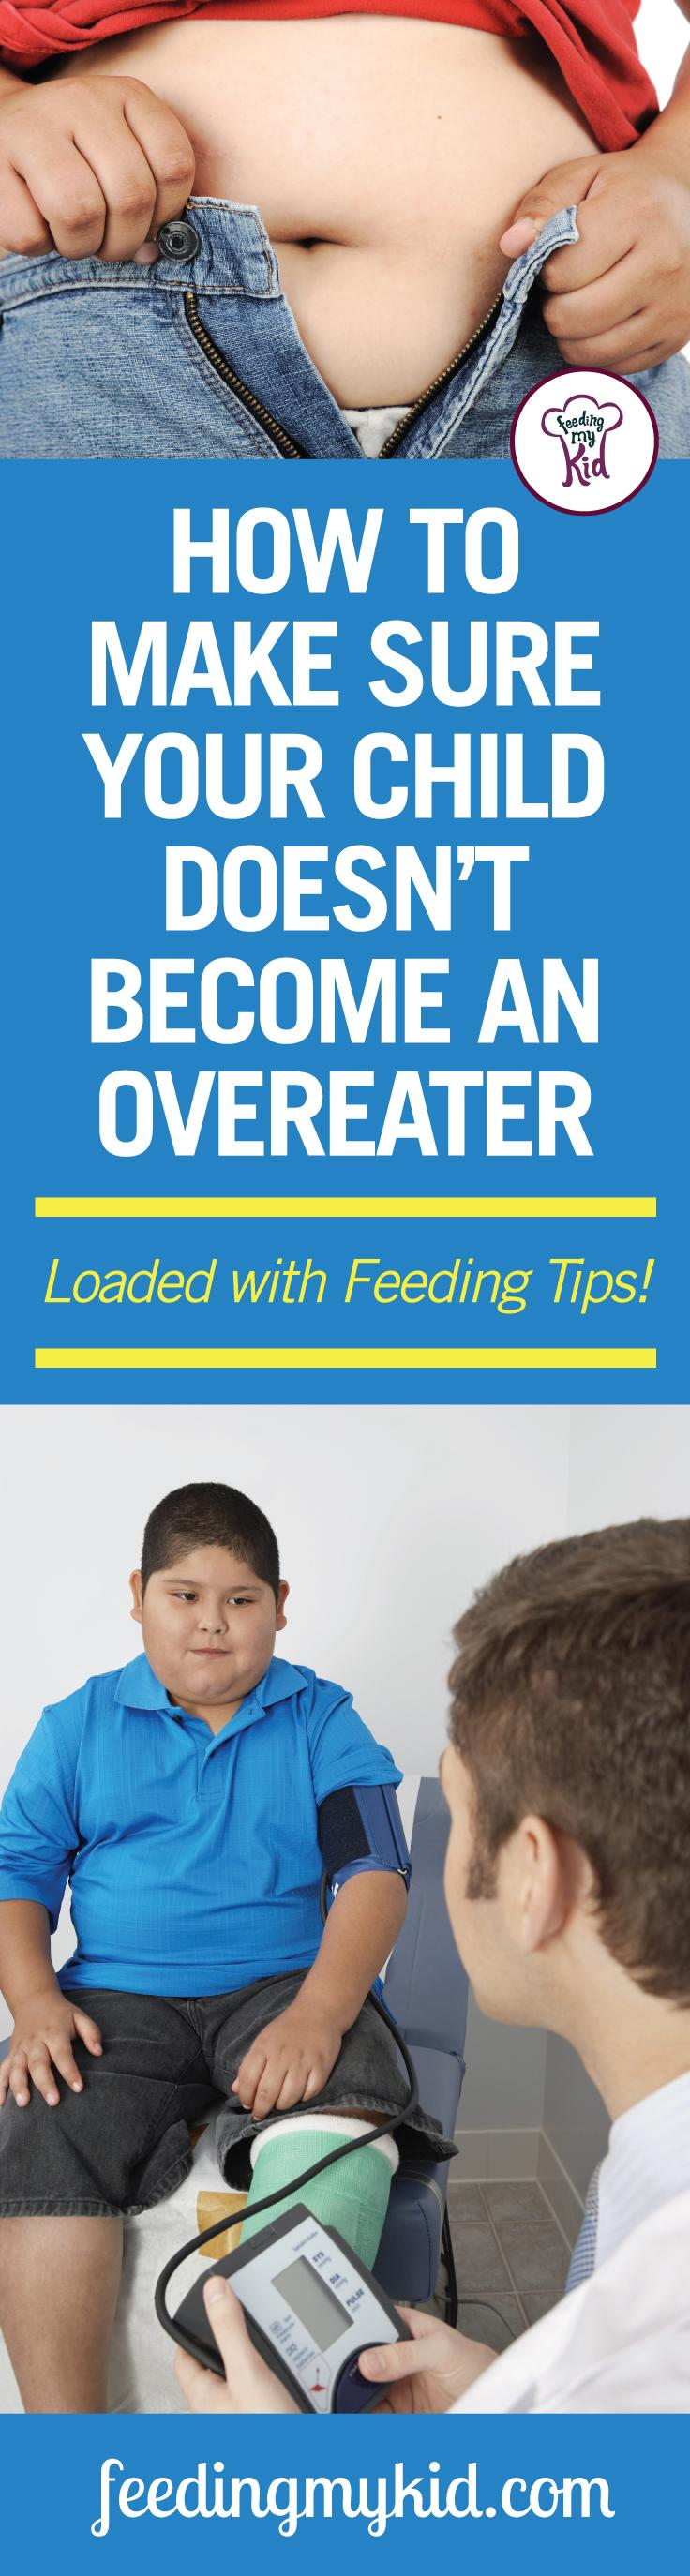 This is a must share! Find out how to stop overeating in kids. Feeding My Kid is a website for parents that's full of information you need to raise your kids, from health tips to nutritious recipes. #overeating #stopovereating